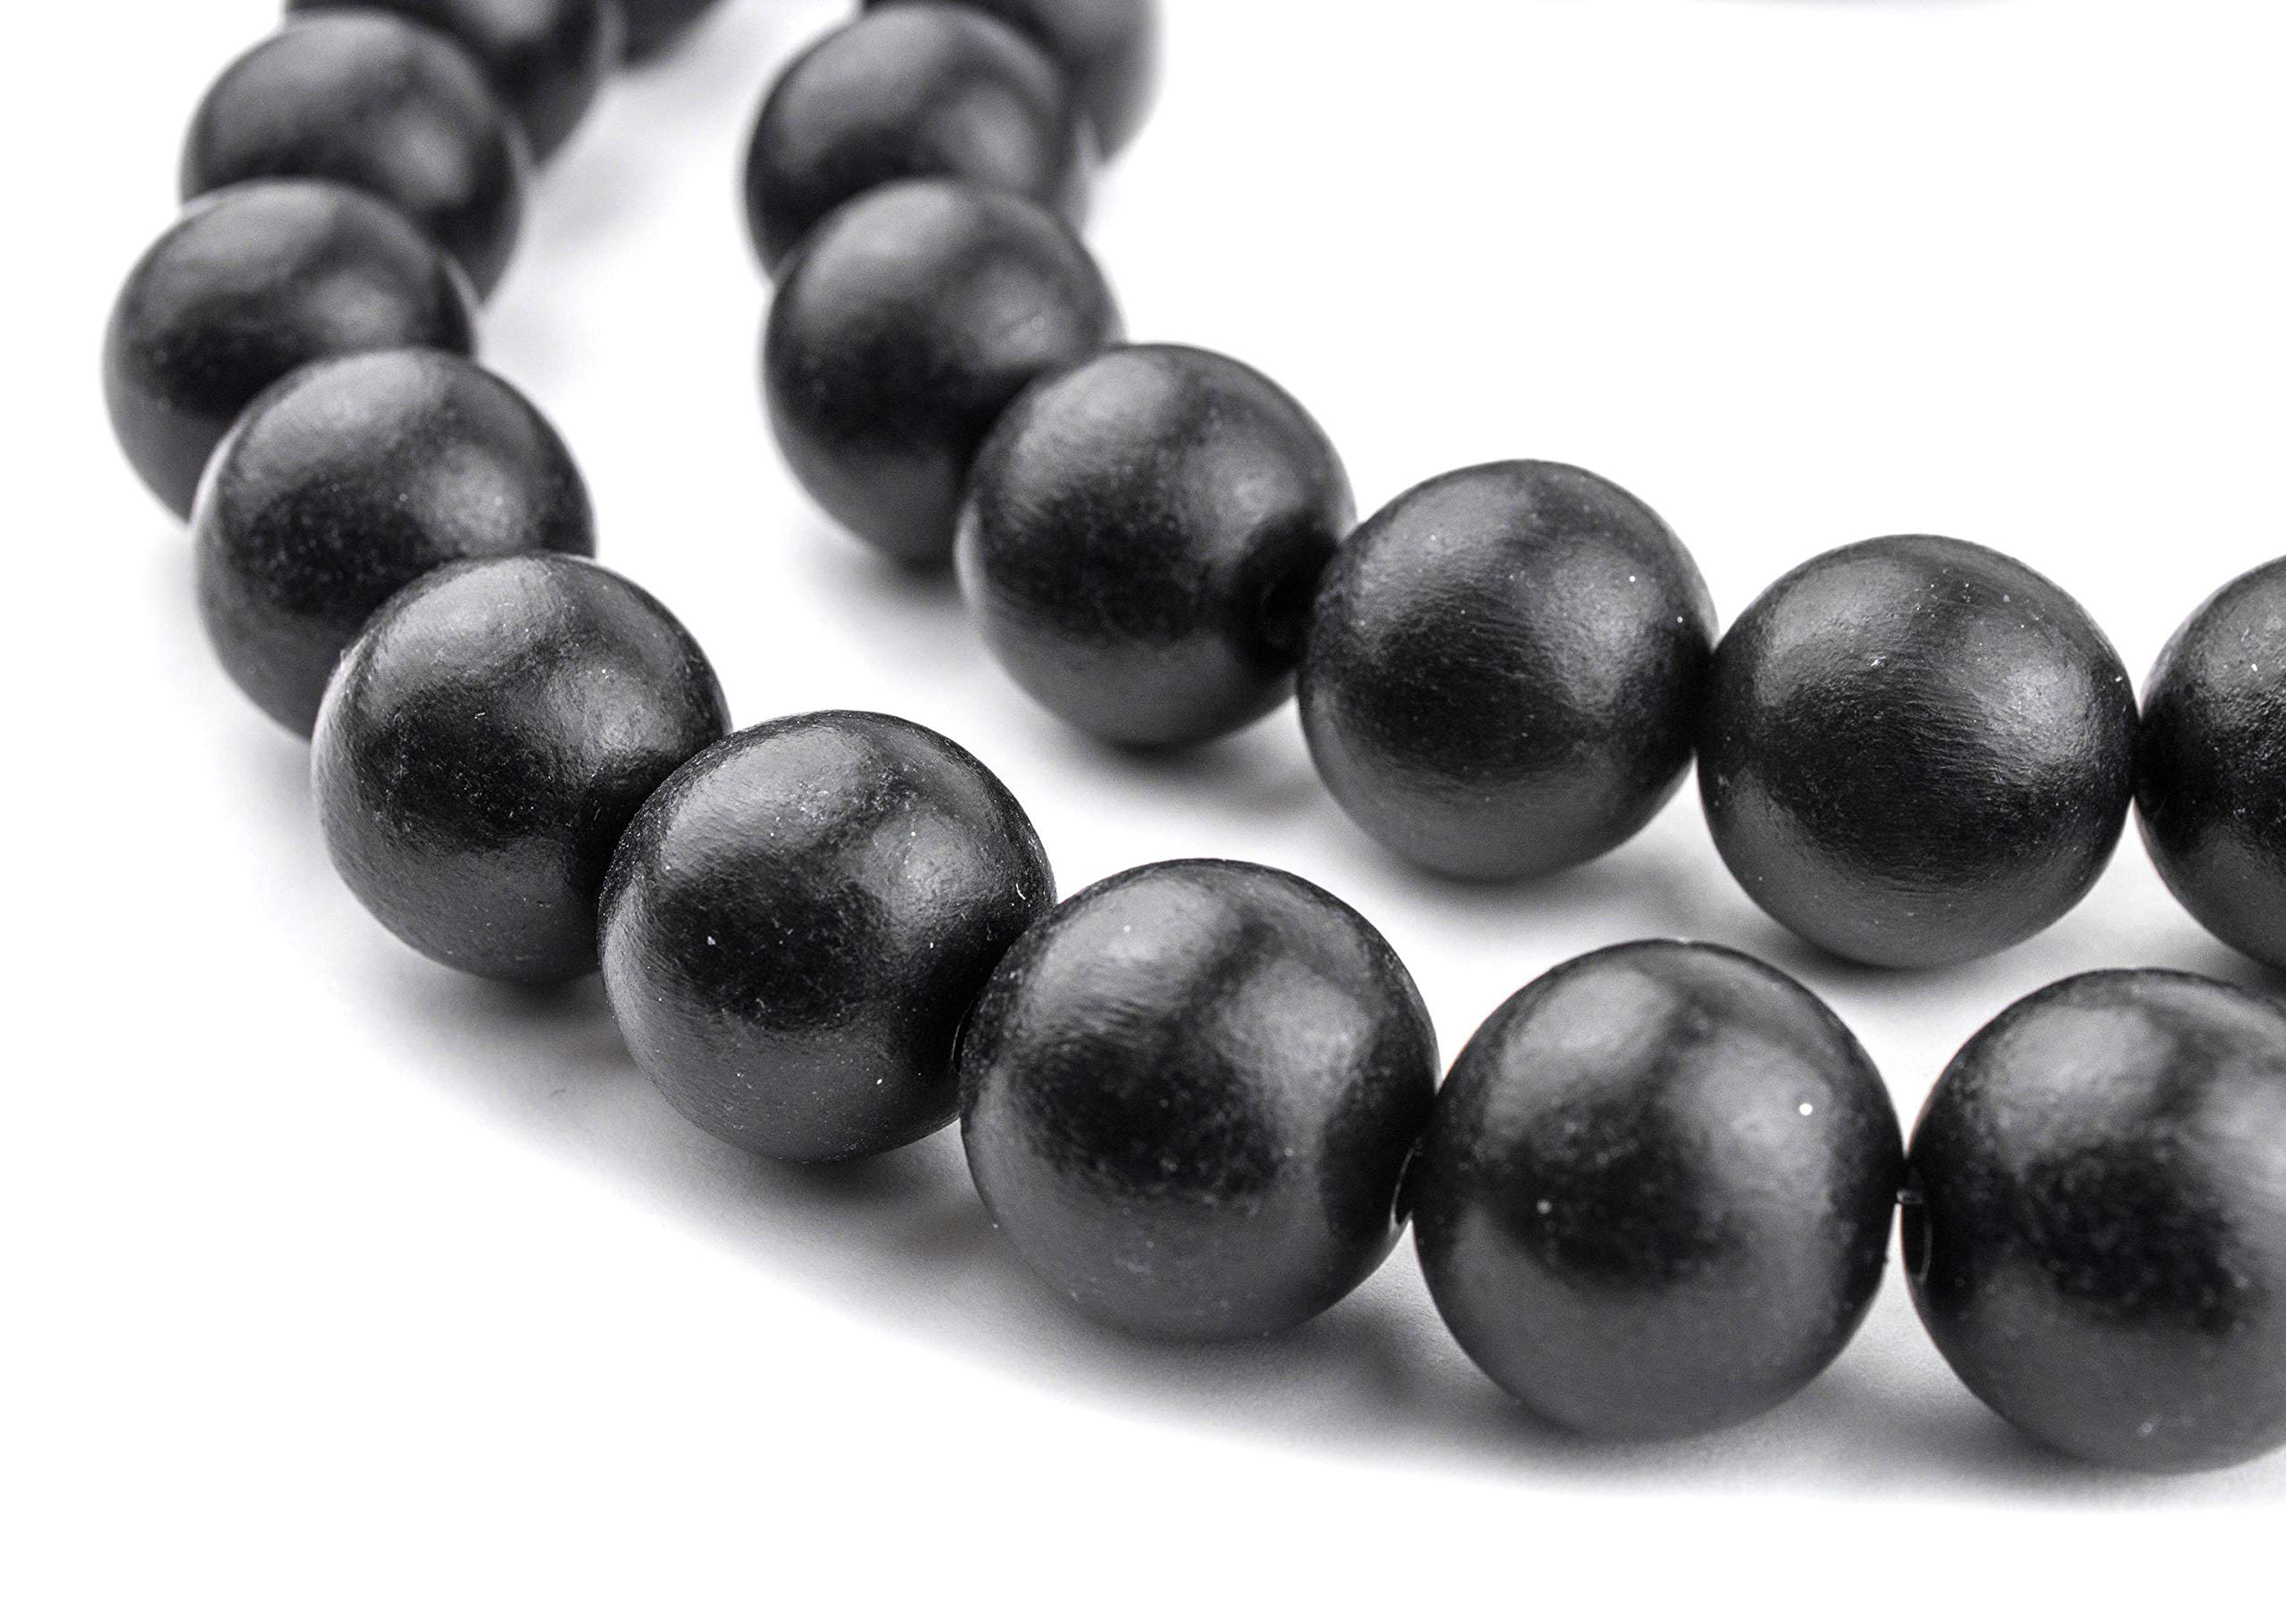 TheBeadChest 16mm Natural Round Wood Beads, Wooden Beads Loose Wood Spacer Beads for DIY Jewelry Making, 4 Sizes (8mm, 10mm, 12mm, 20mm) - Black